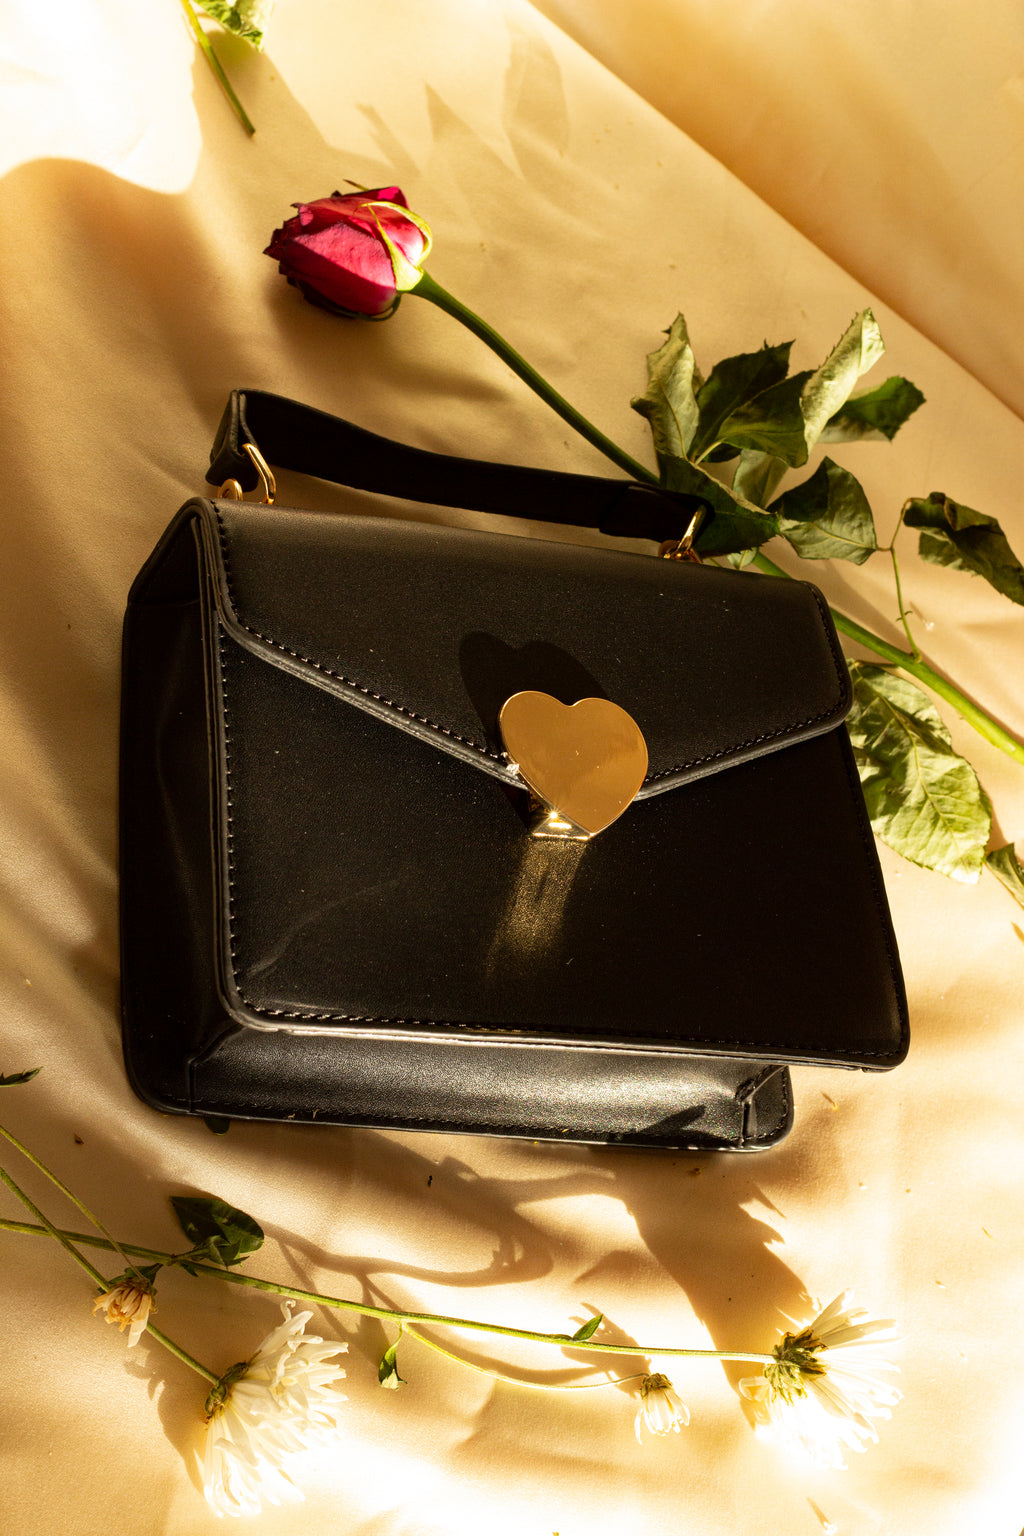 Heart Envelope Crossbody Messenger Bag - Sugar + Style